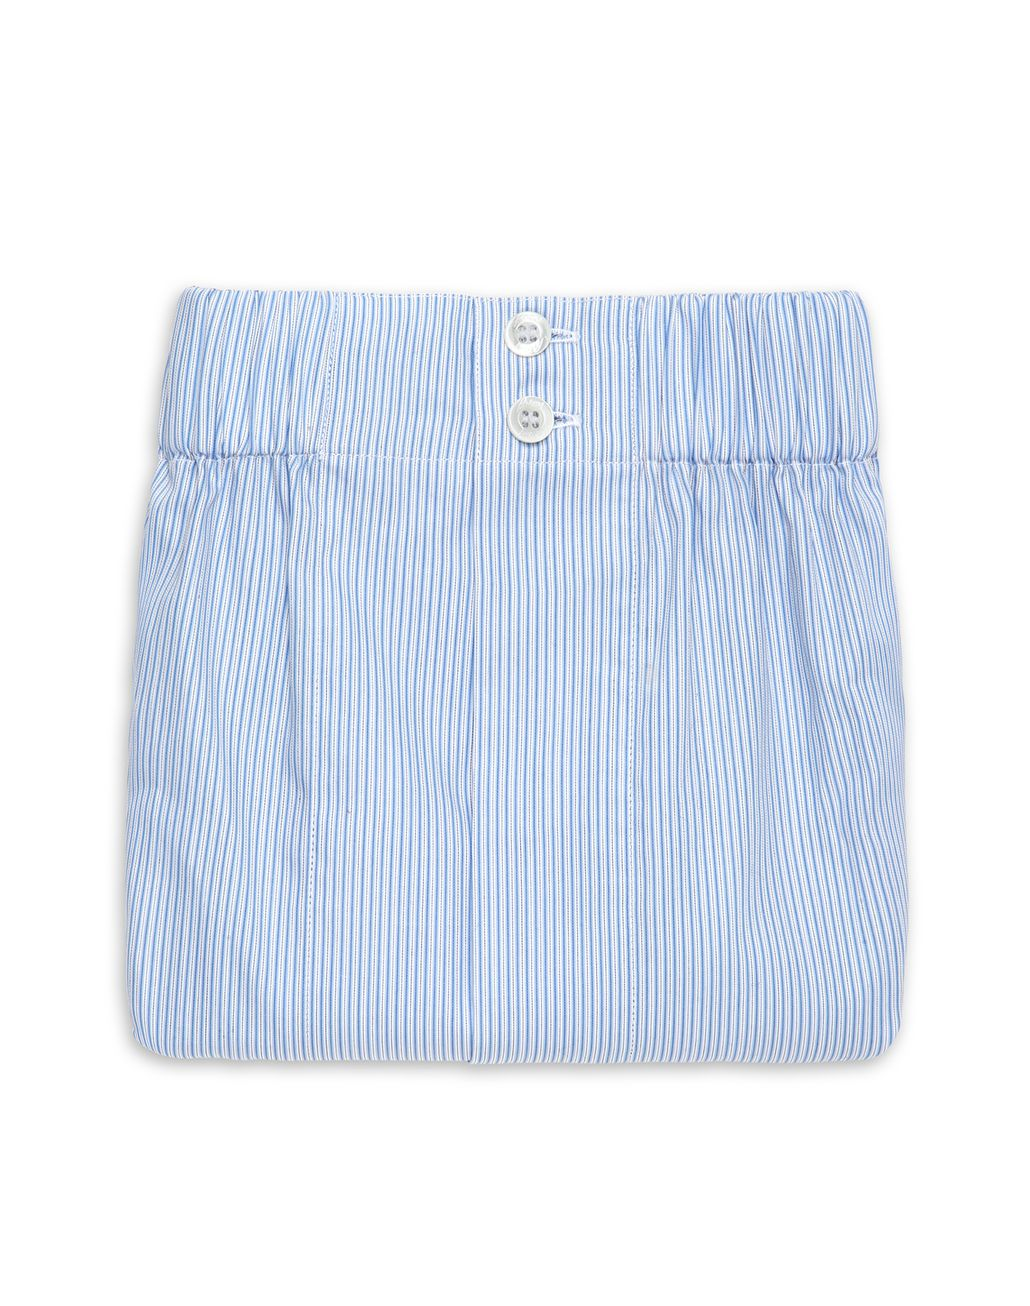 BRIONI Bluette and White Pinstriped Underwear Underwear [*** pickupInStoreShippingNotGuaranteed_info ***] r